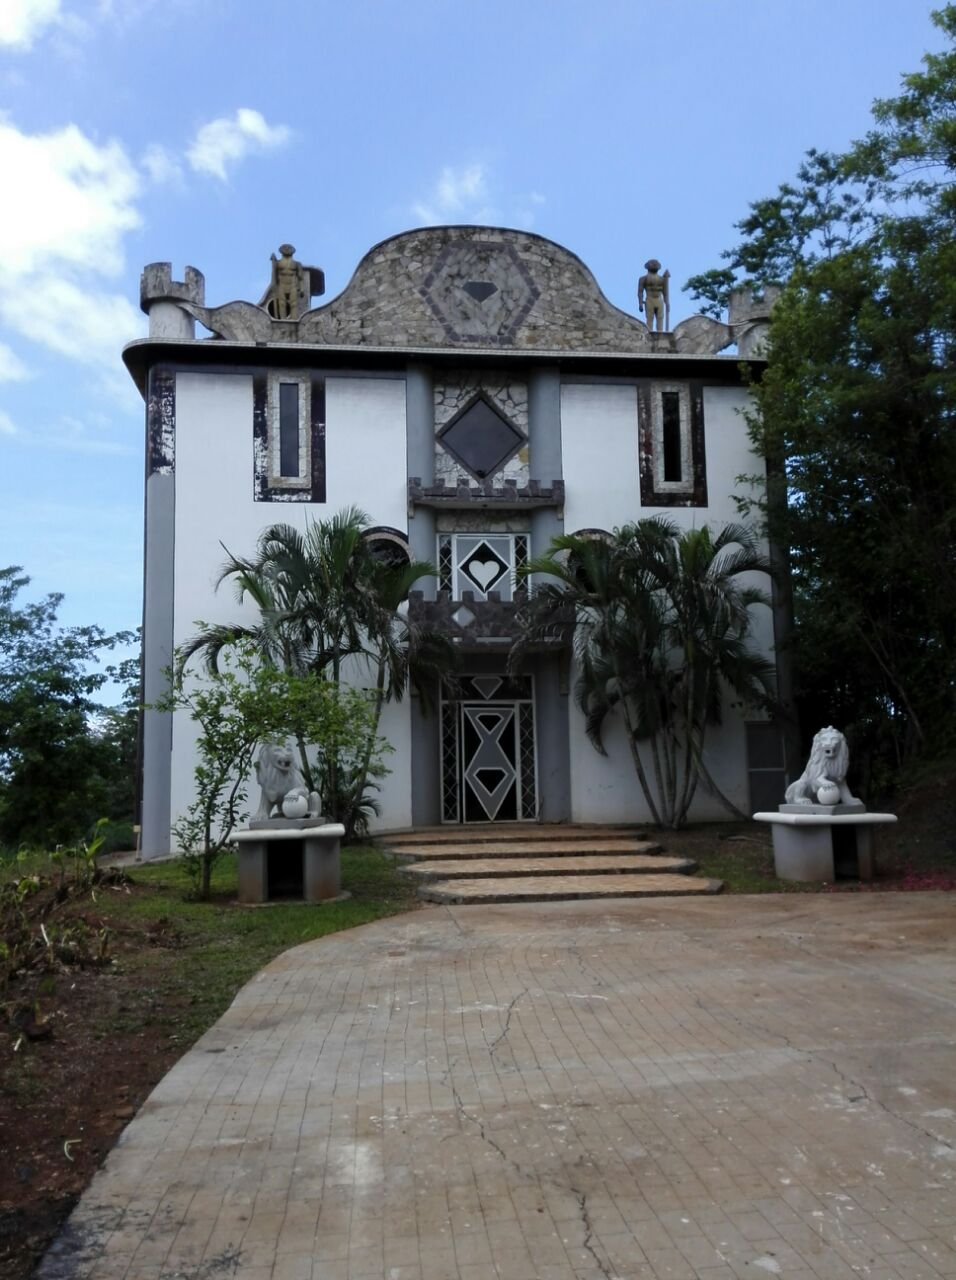 For sale – Diamond castle $850,000, located in Cerro Lodge, C.R